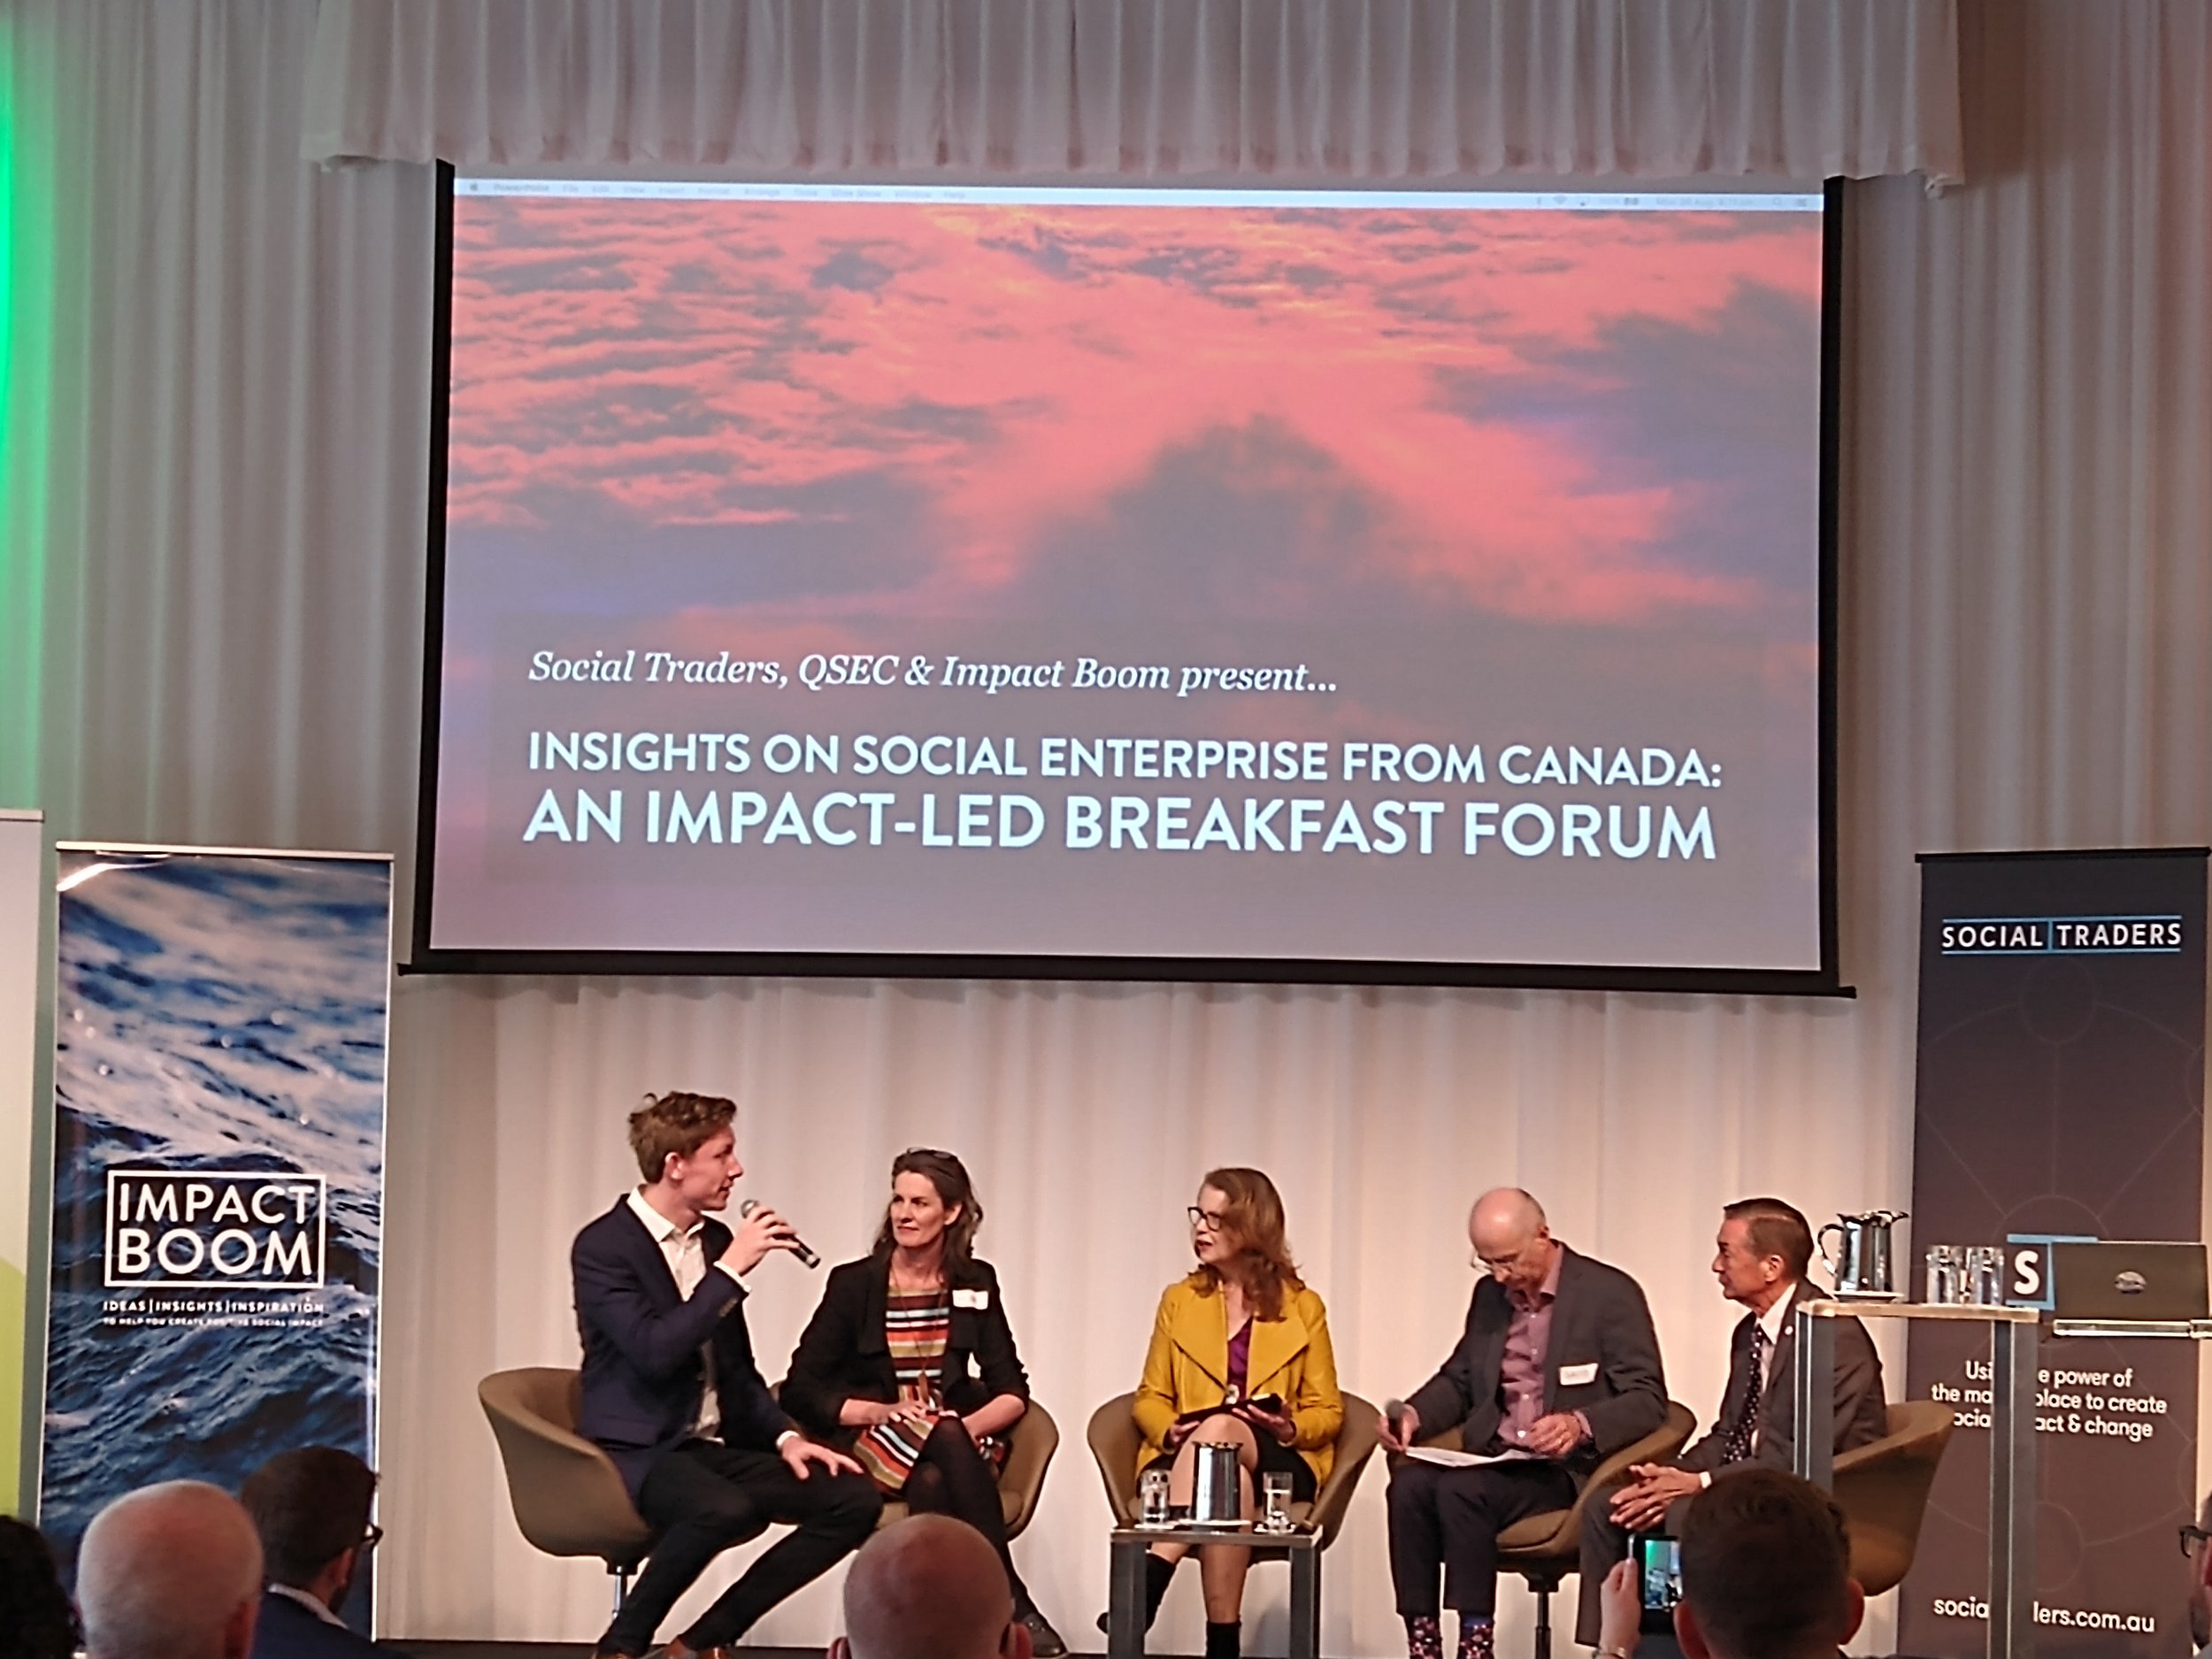 Insights on Social Enterprise from Canada: An Impact-Led Breakfast Forum